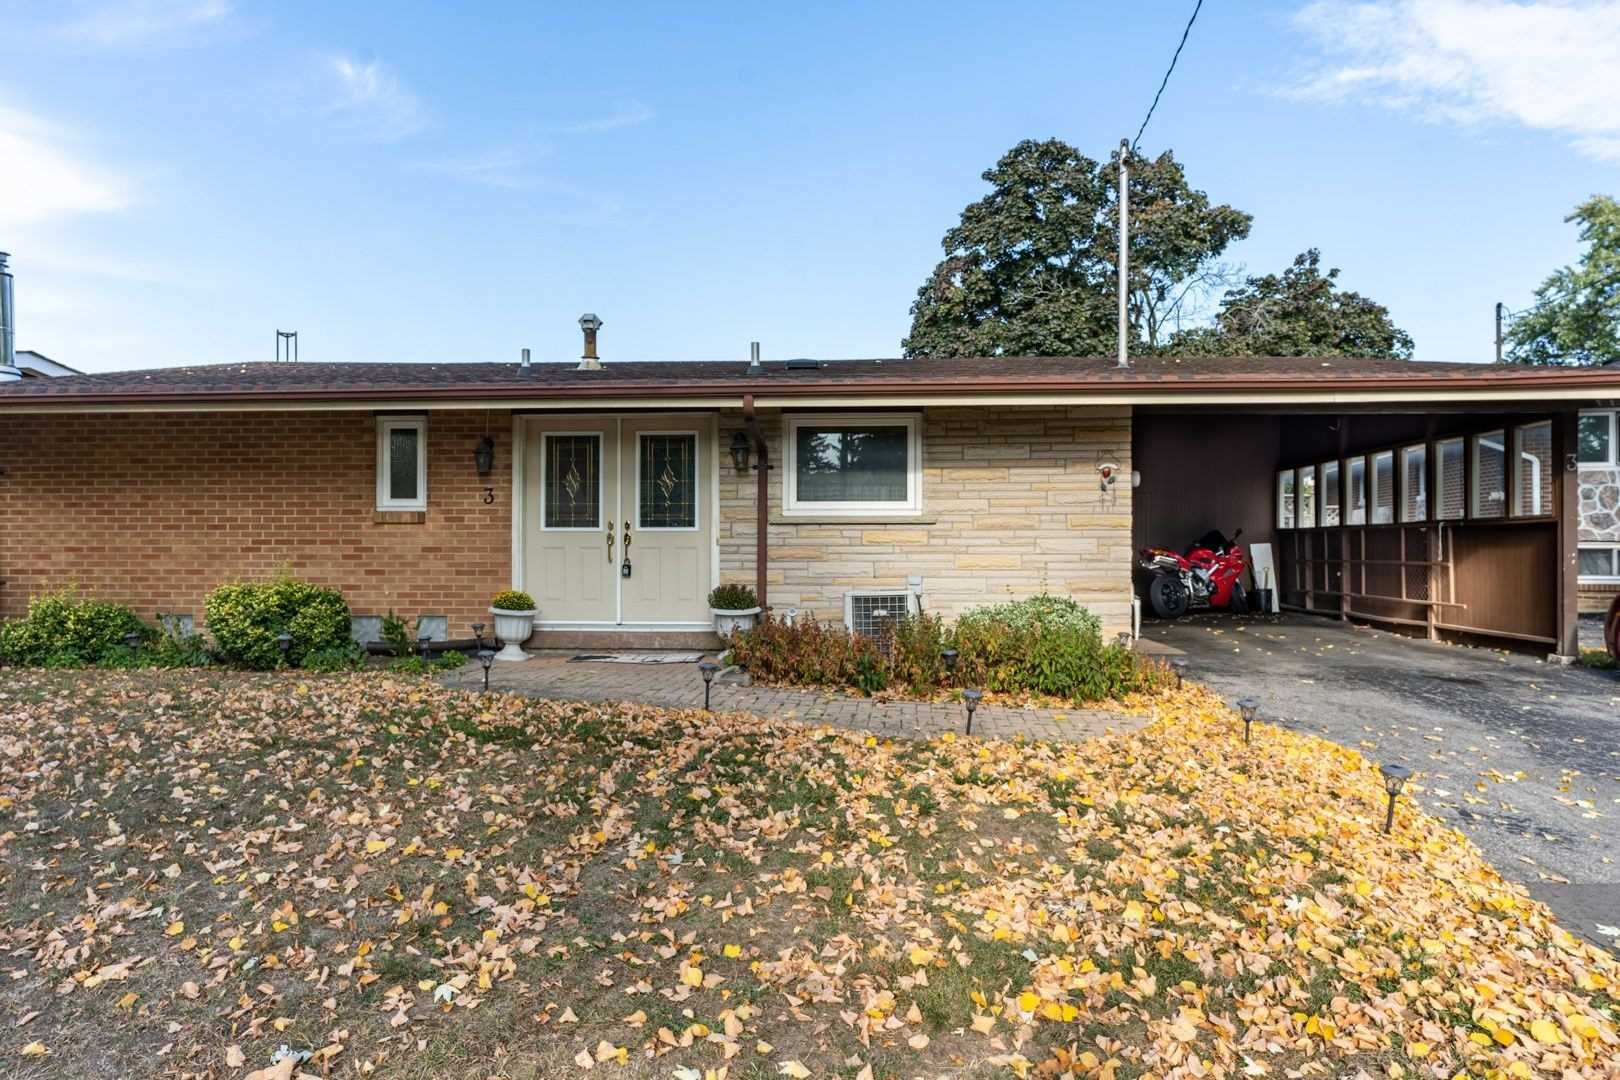 Main Photo: 3 Rosswood Crescent in Toronto: Bendale House (Bungalow) for sale (Toronto E09)  : MLS®# E4932683